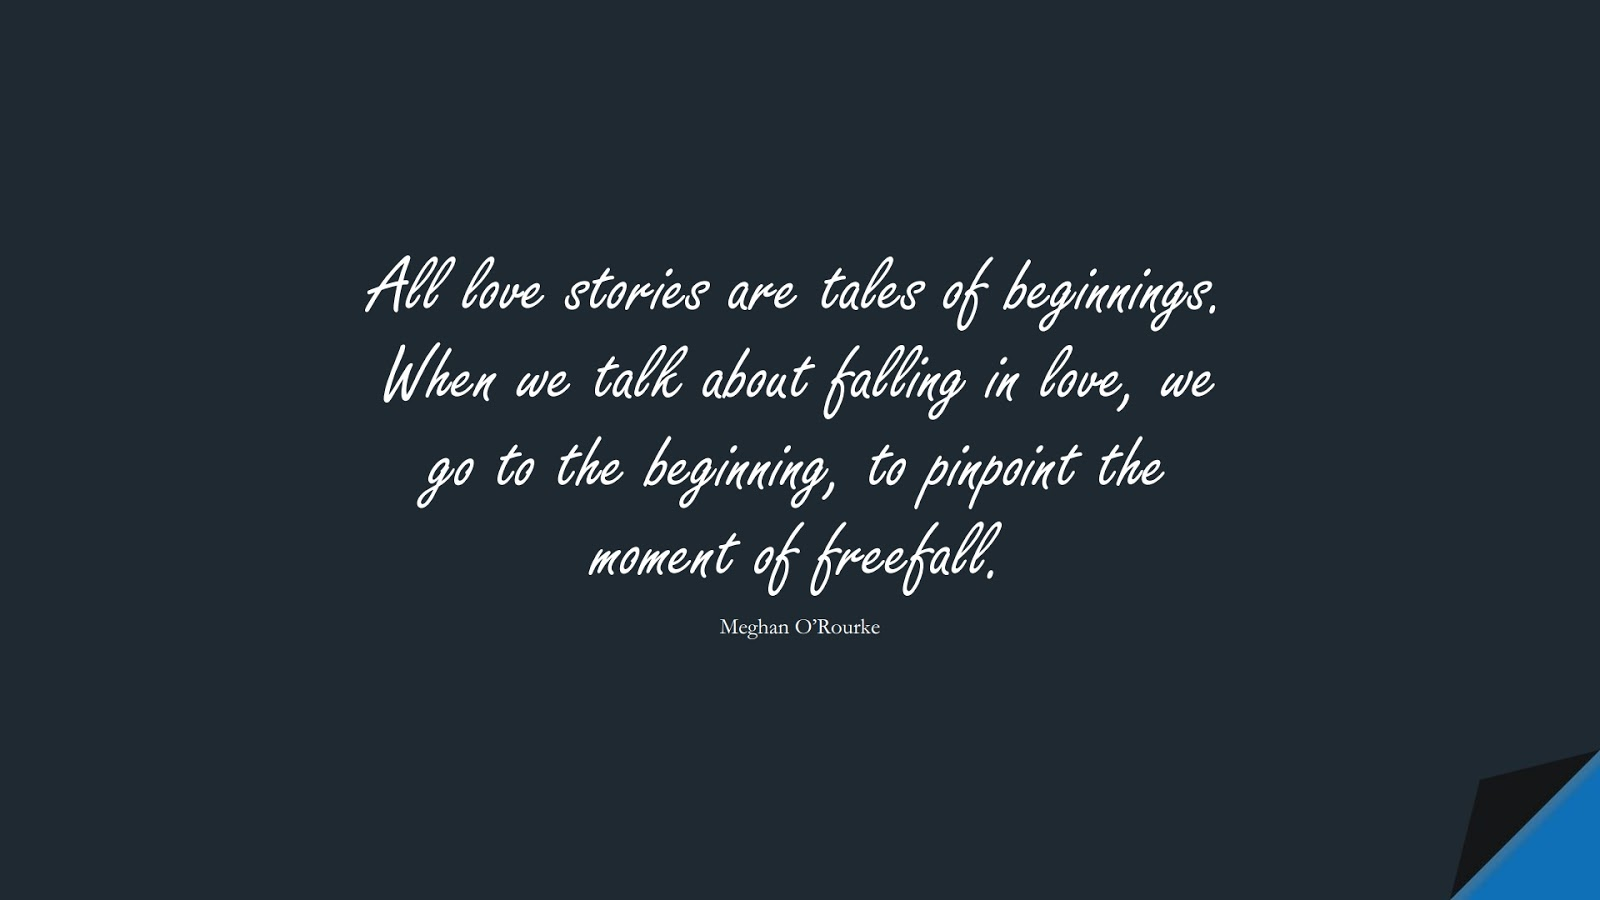 All love stories are tales of beginnings. When we talk about falling in love, we go to the beginning, to pinpoint the moment of freefall. (Meghan O'Rourke);  #LoveQuotes